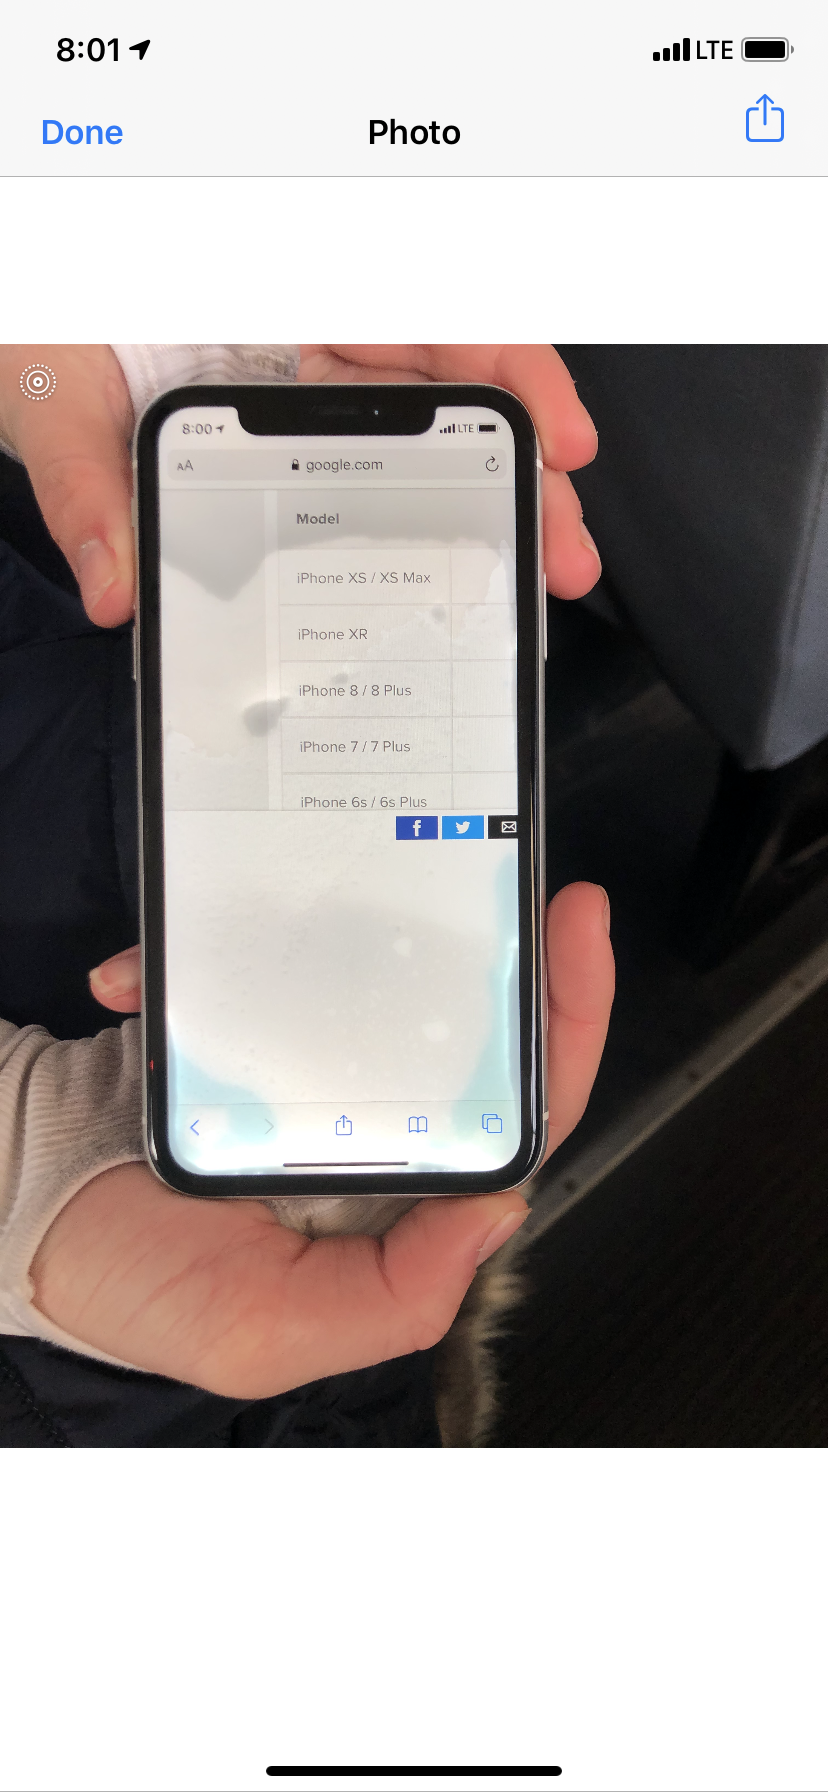 Water Damage In Iphone Xr Le Community